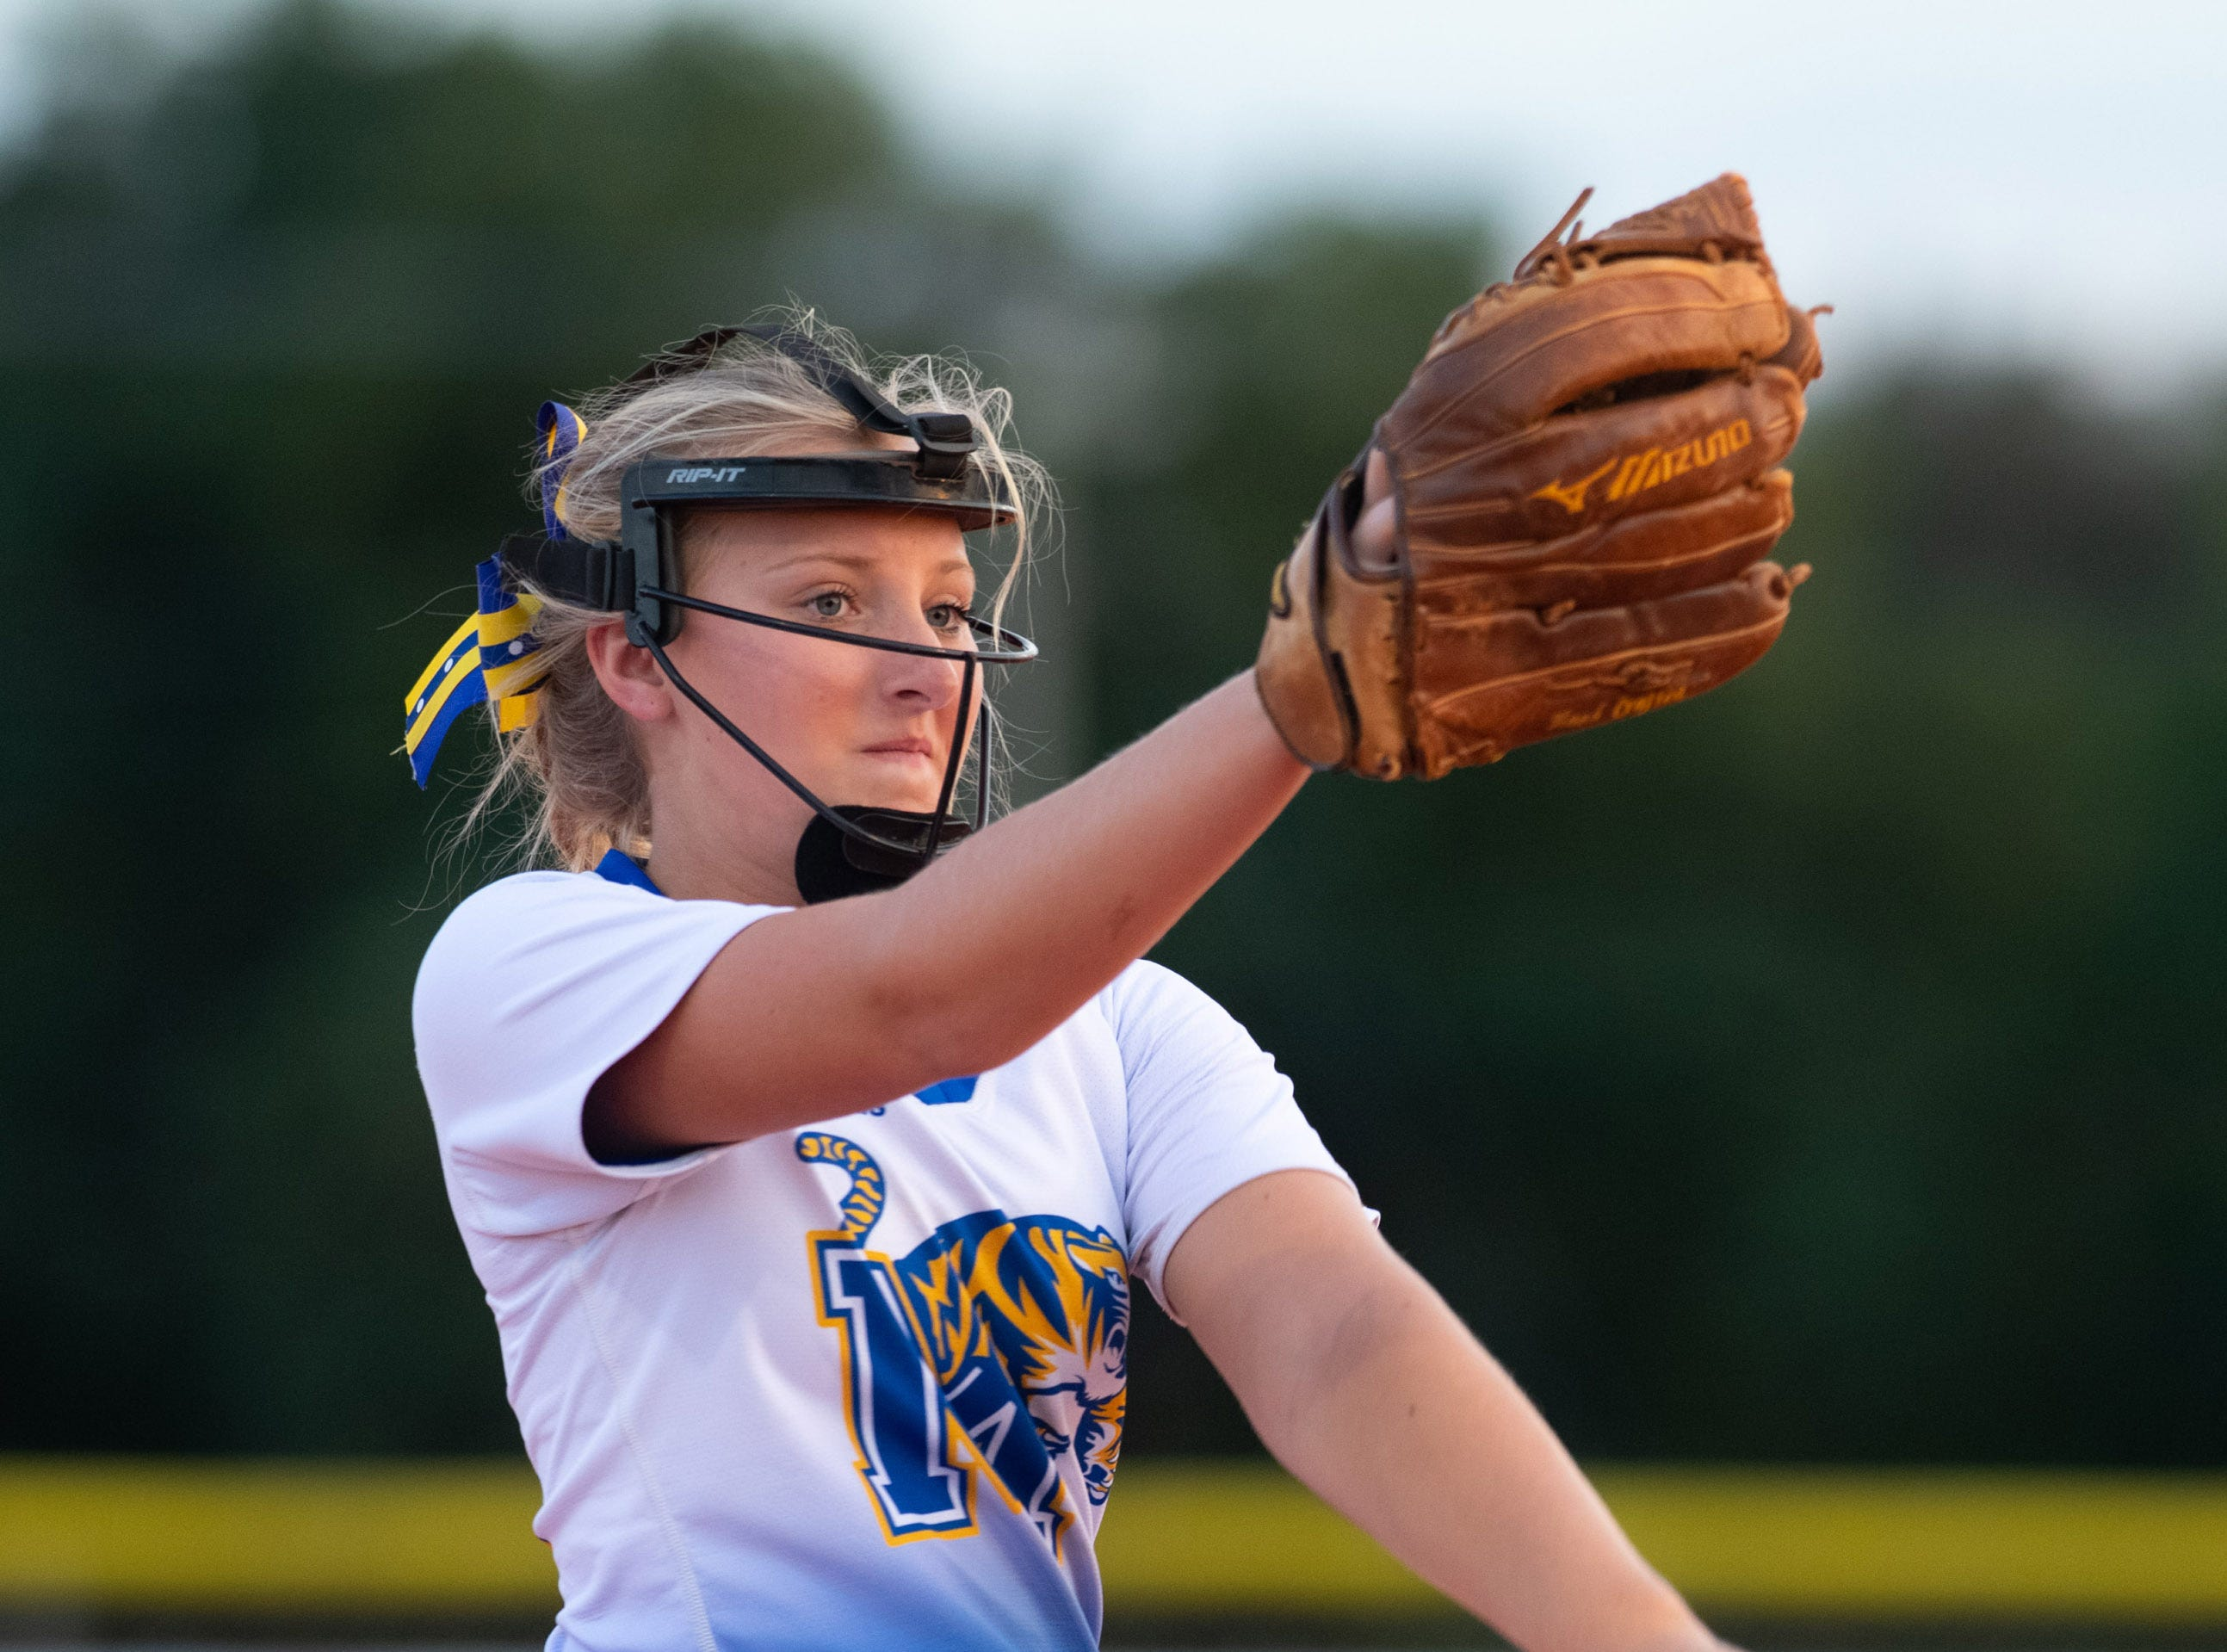 Martin County's pitcher Emily MacMullen throws a pitch in the first inning of their game against Jupiter during the high school softball game at Martin County High School on Friday, March 1, 2019, in Stuart.